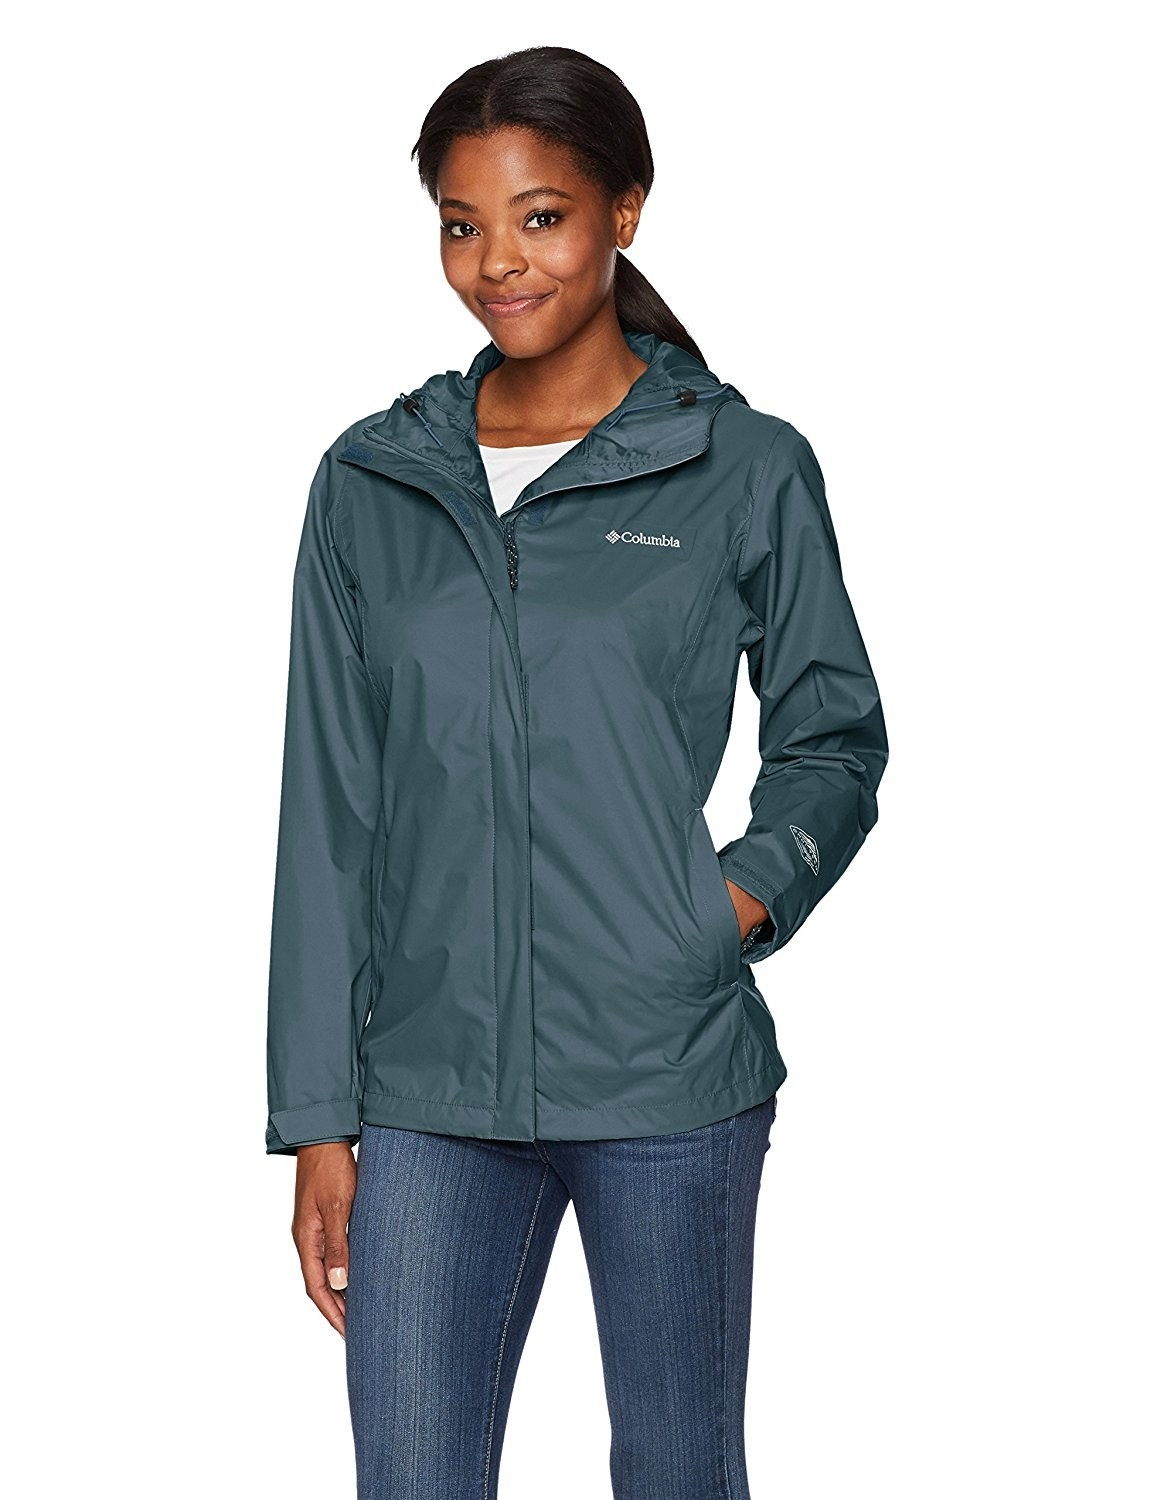 A waterproof jacket guaranteed to keep you bone dry, even in the most intense downpours. An umbrella? I don't know her.